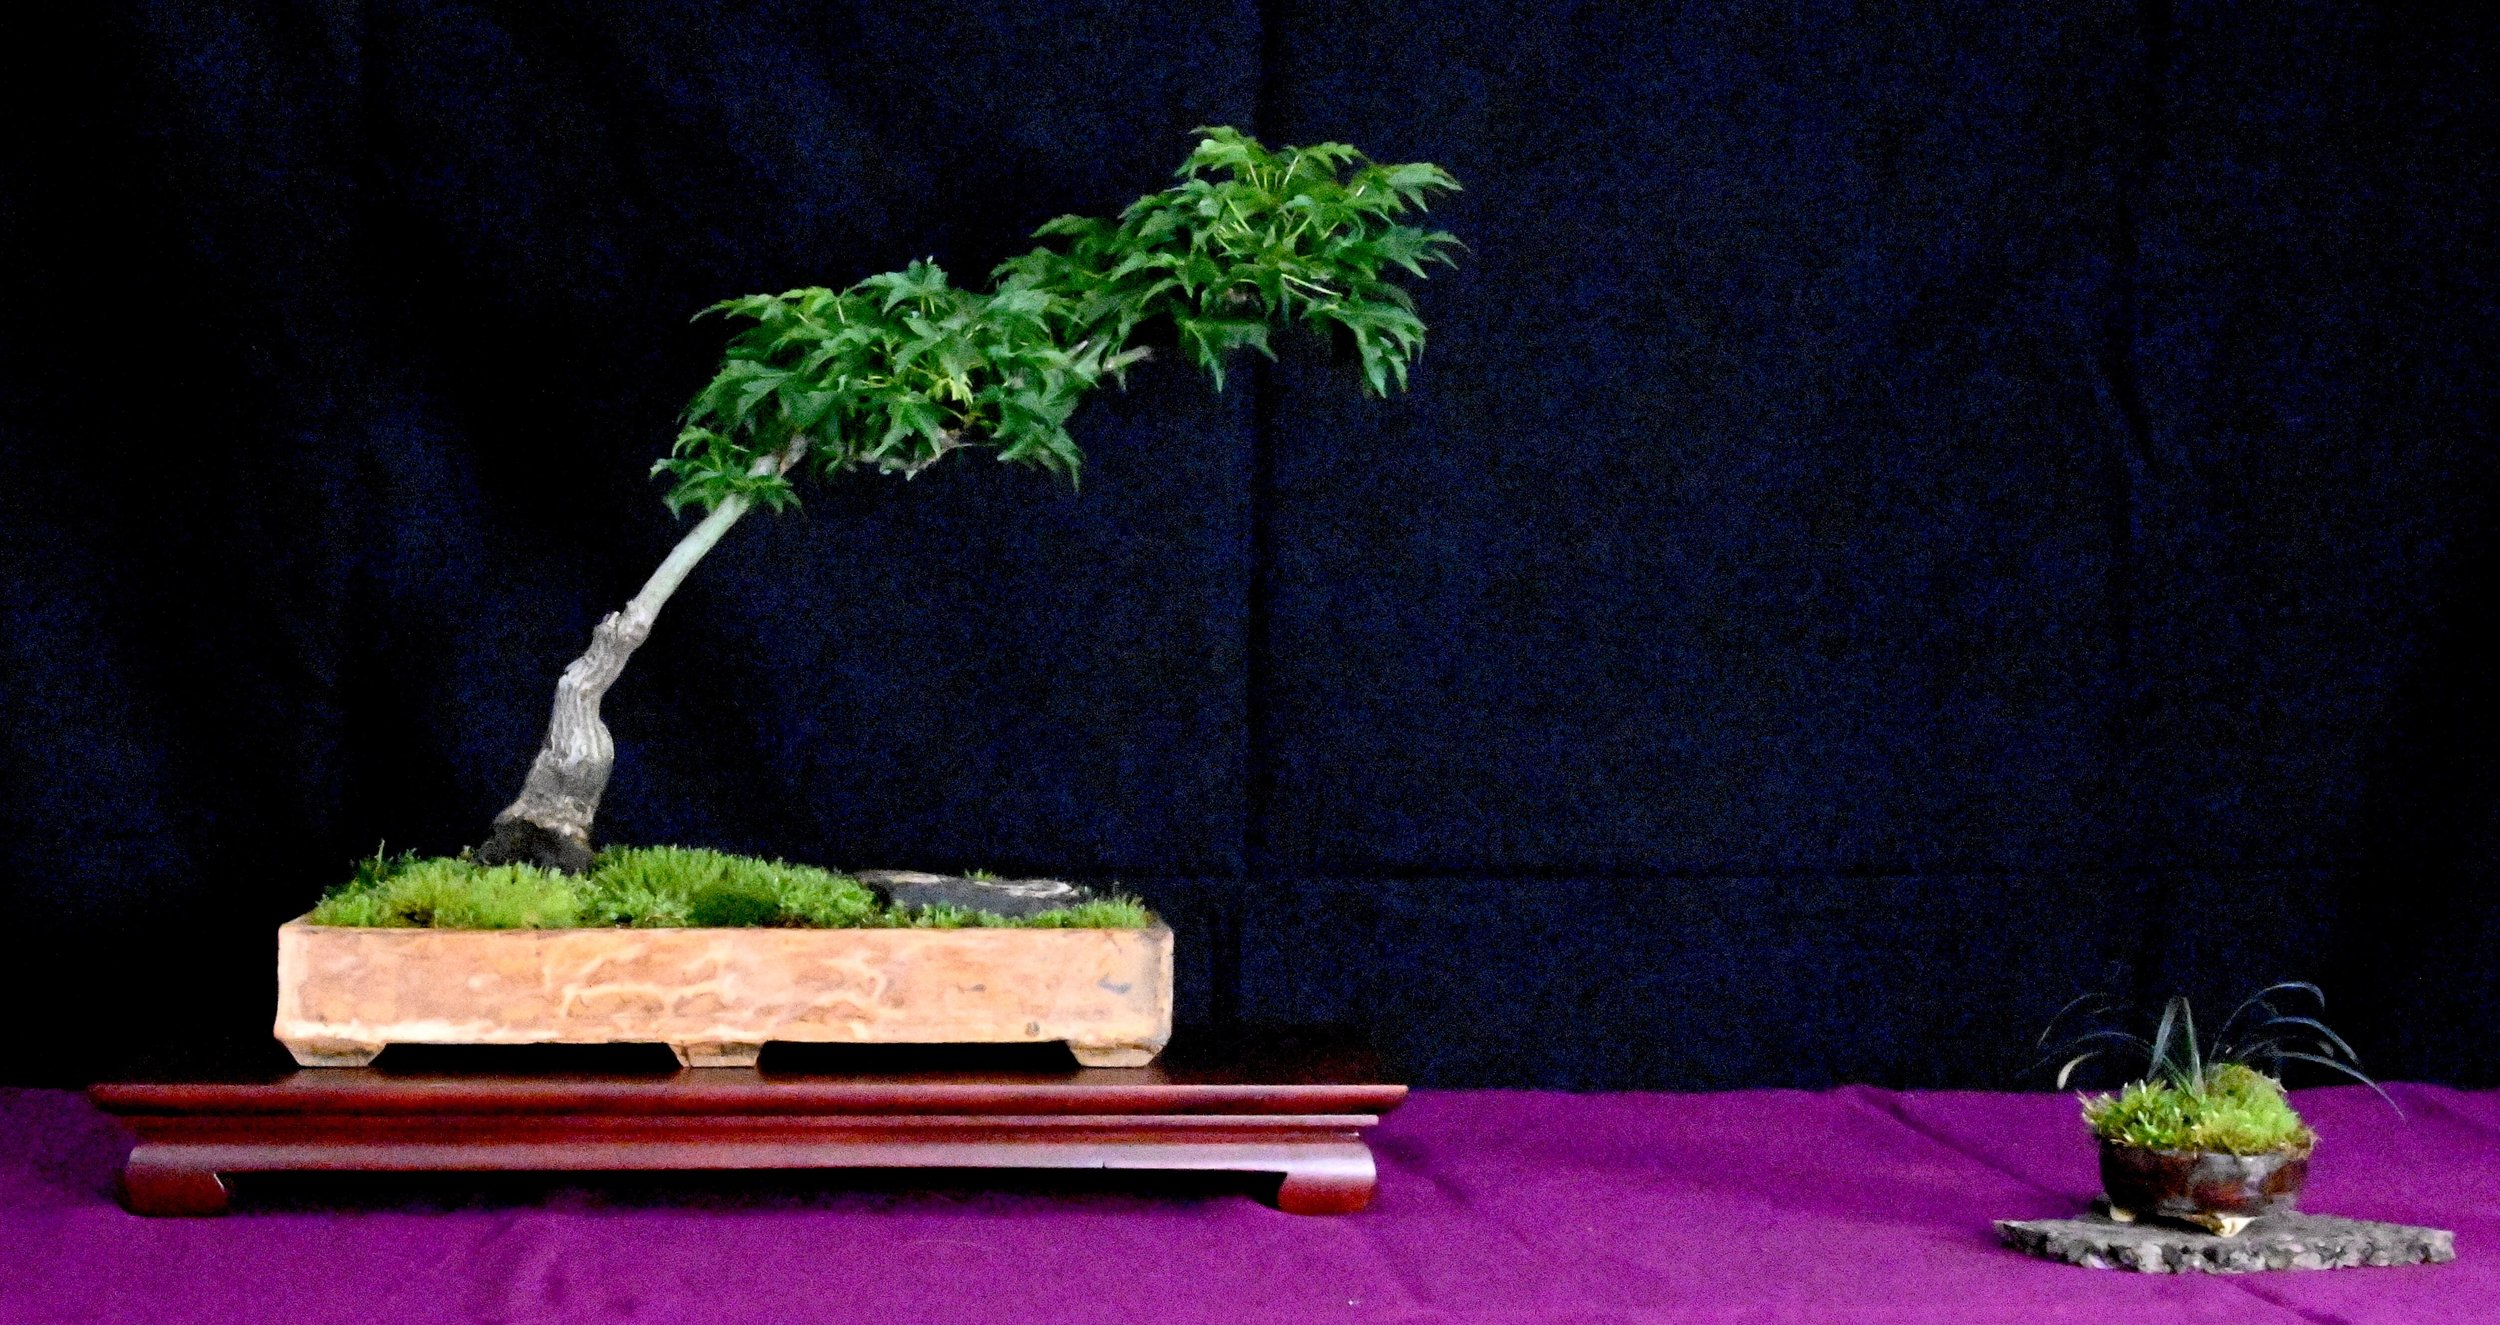 bonsai exhibit 16.jpeg